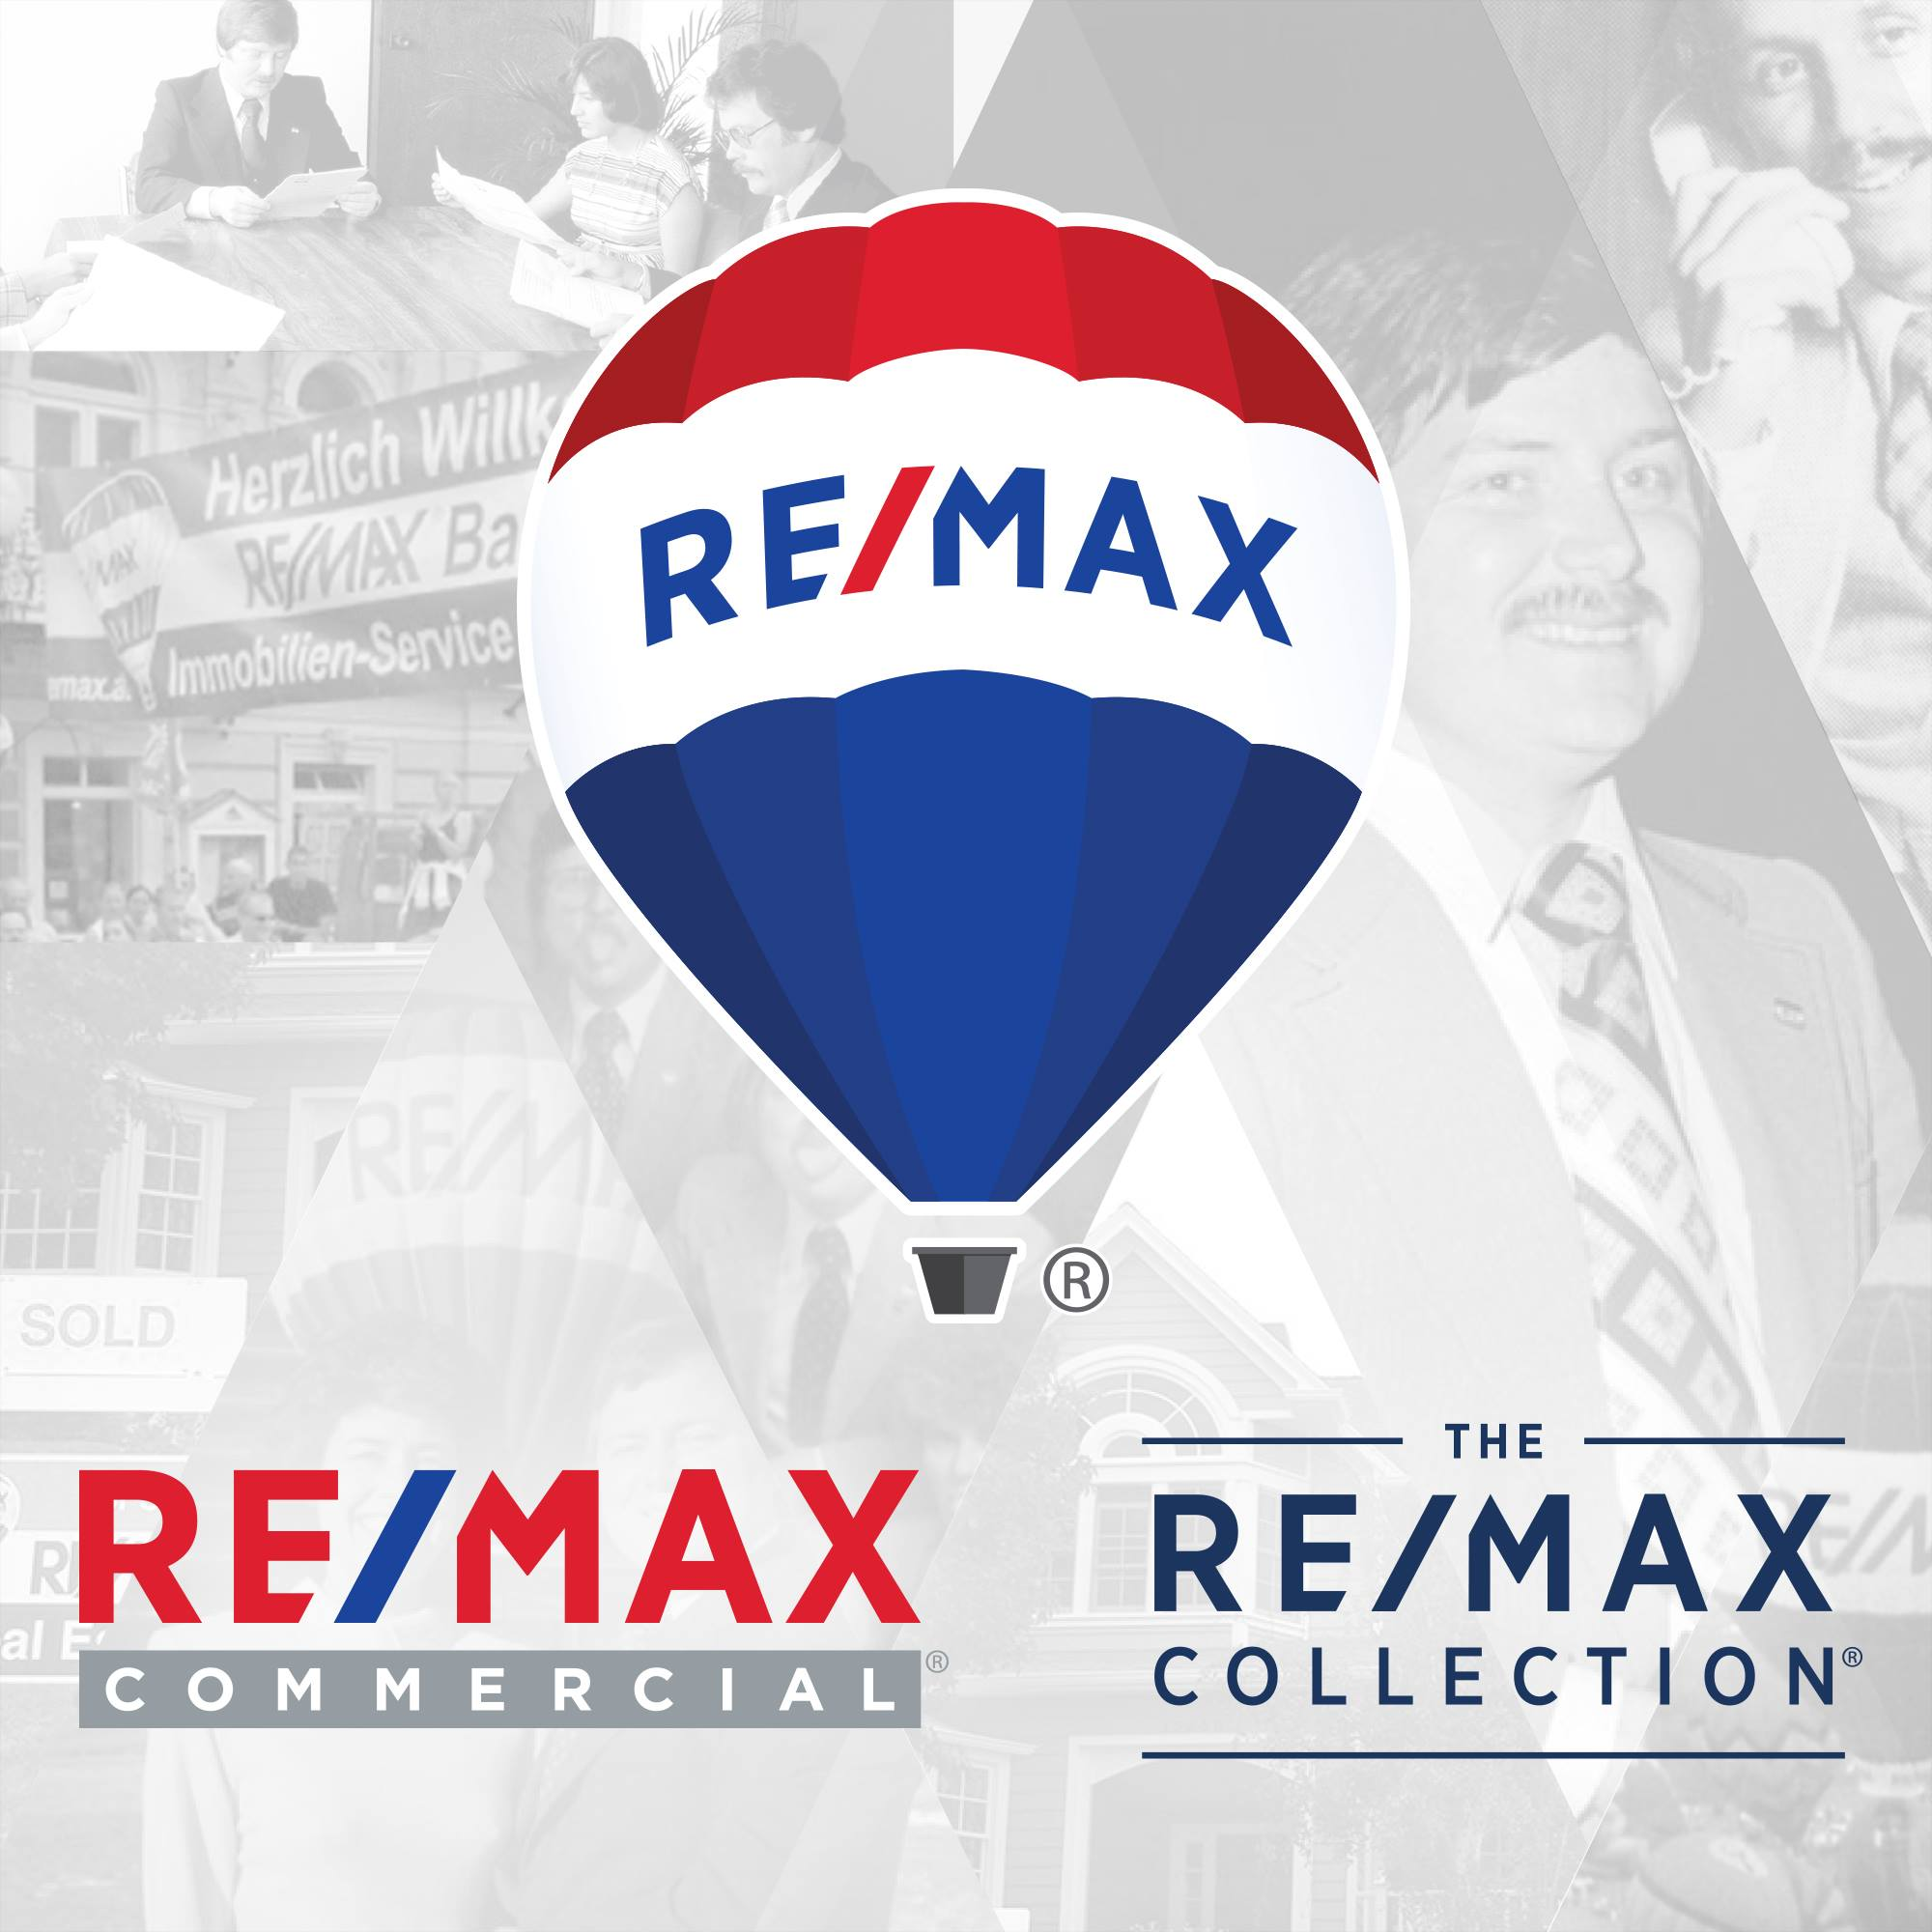 RE/MAX renueva su logotipo